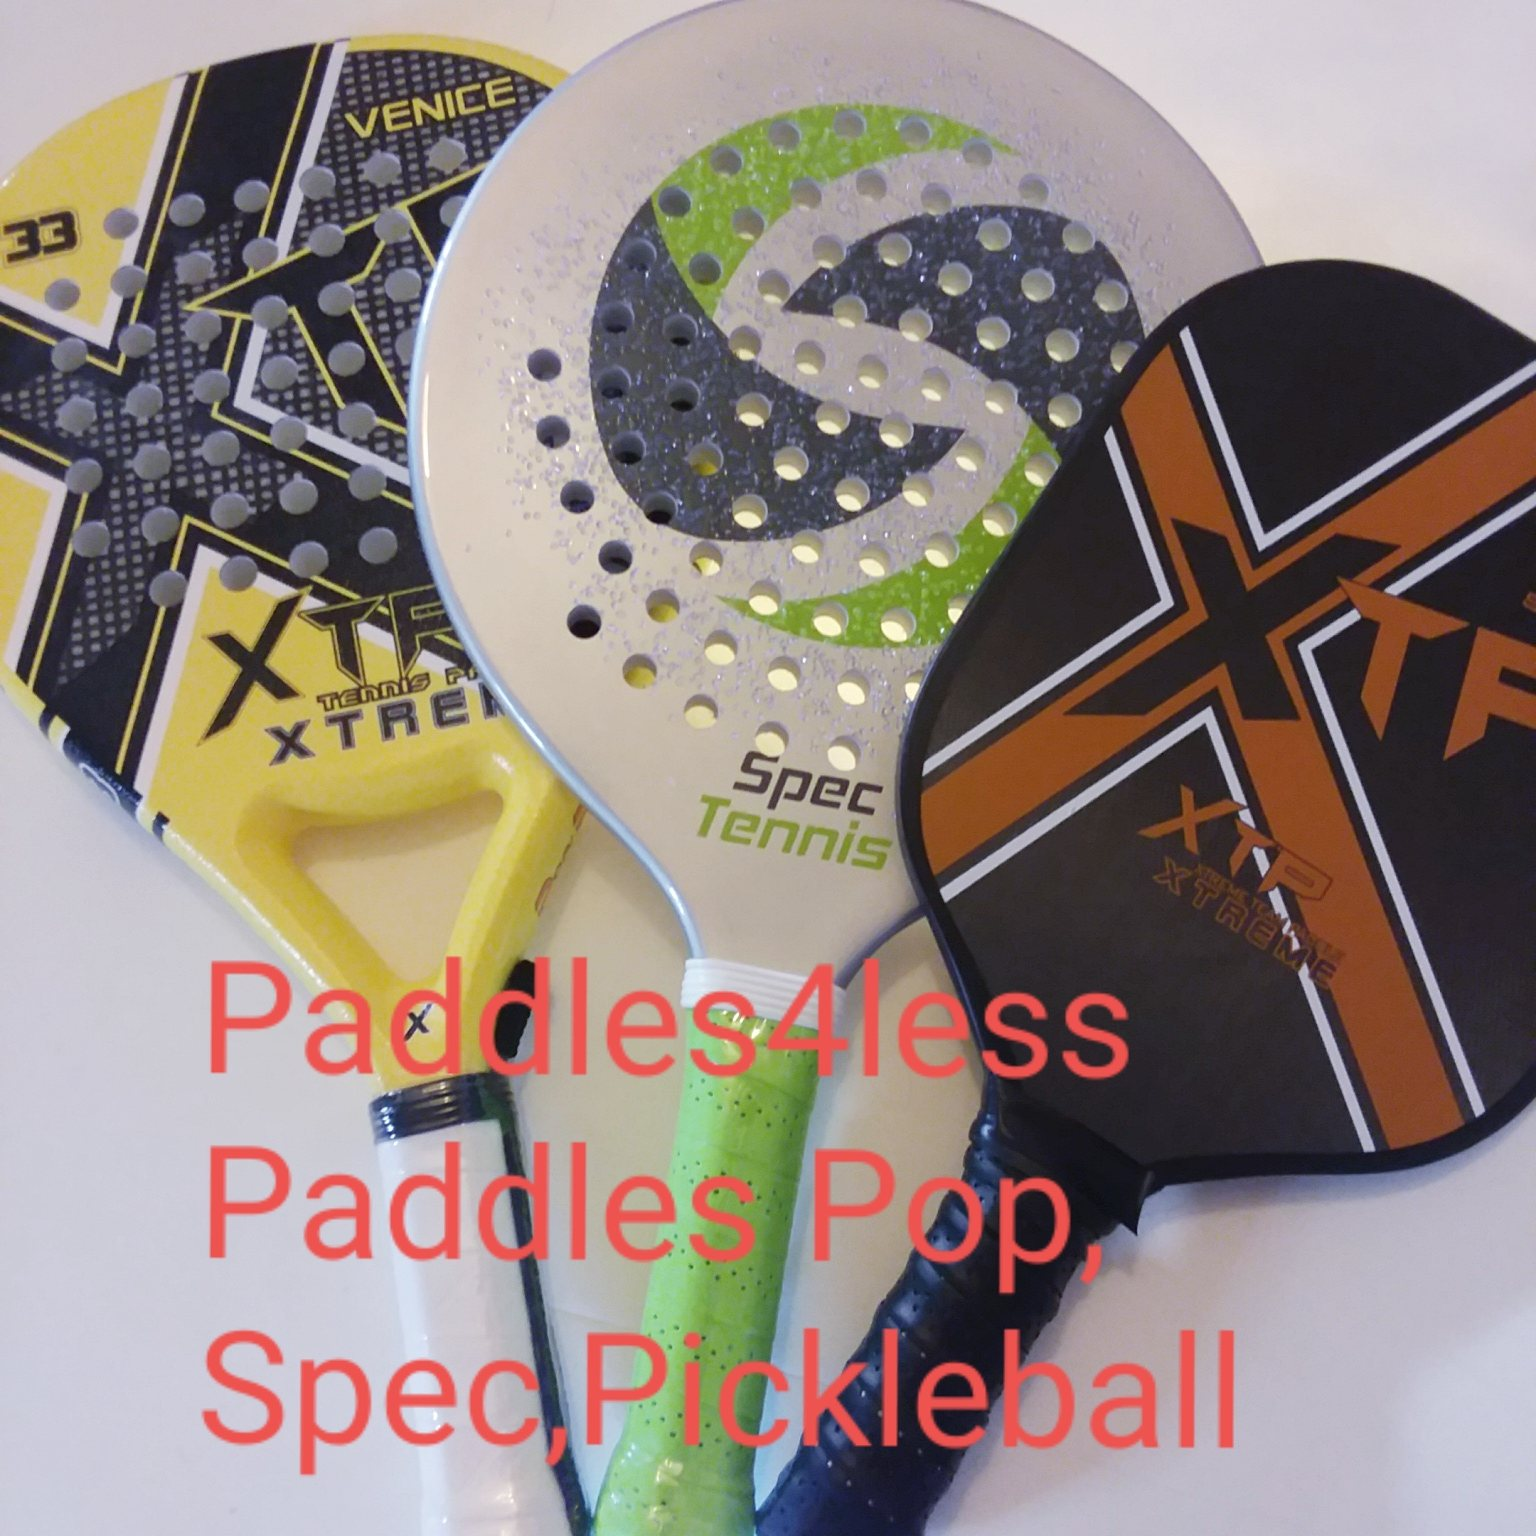 Paddle into 2020 with Paddle Sports,Paddle Tennis,Pop Tennis, Pickleball, Spec Tennis.